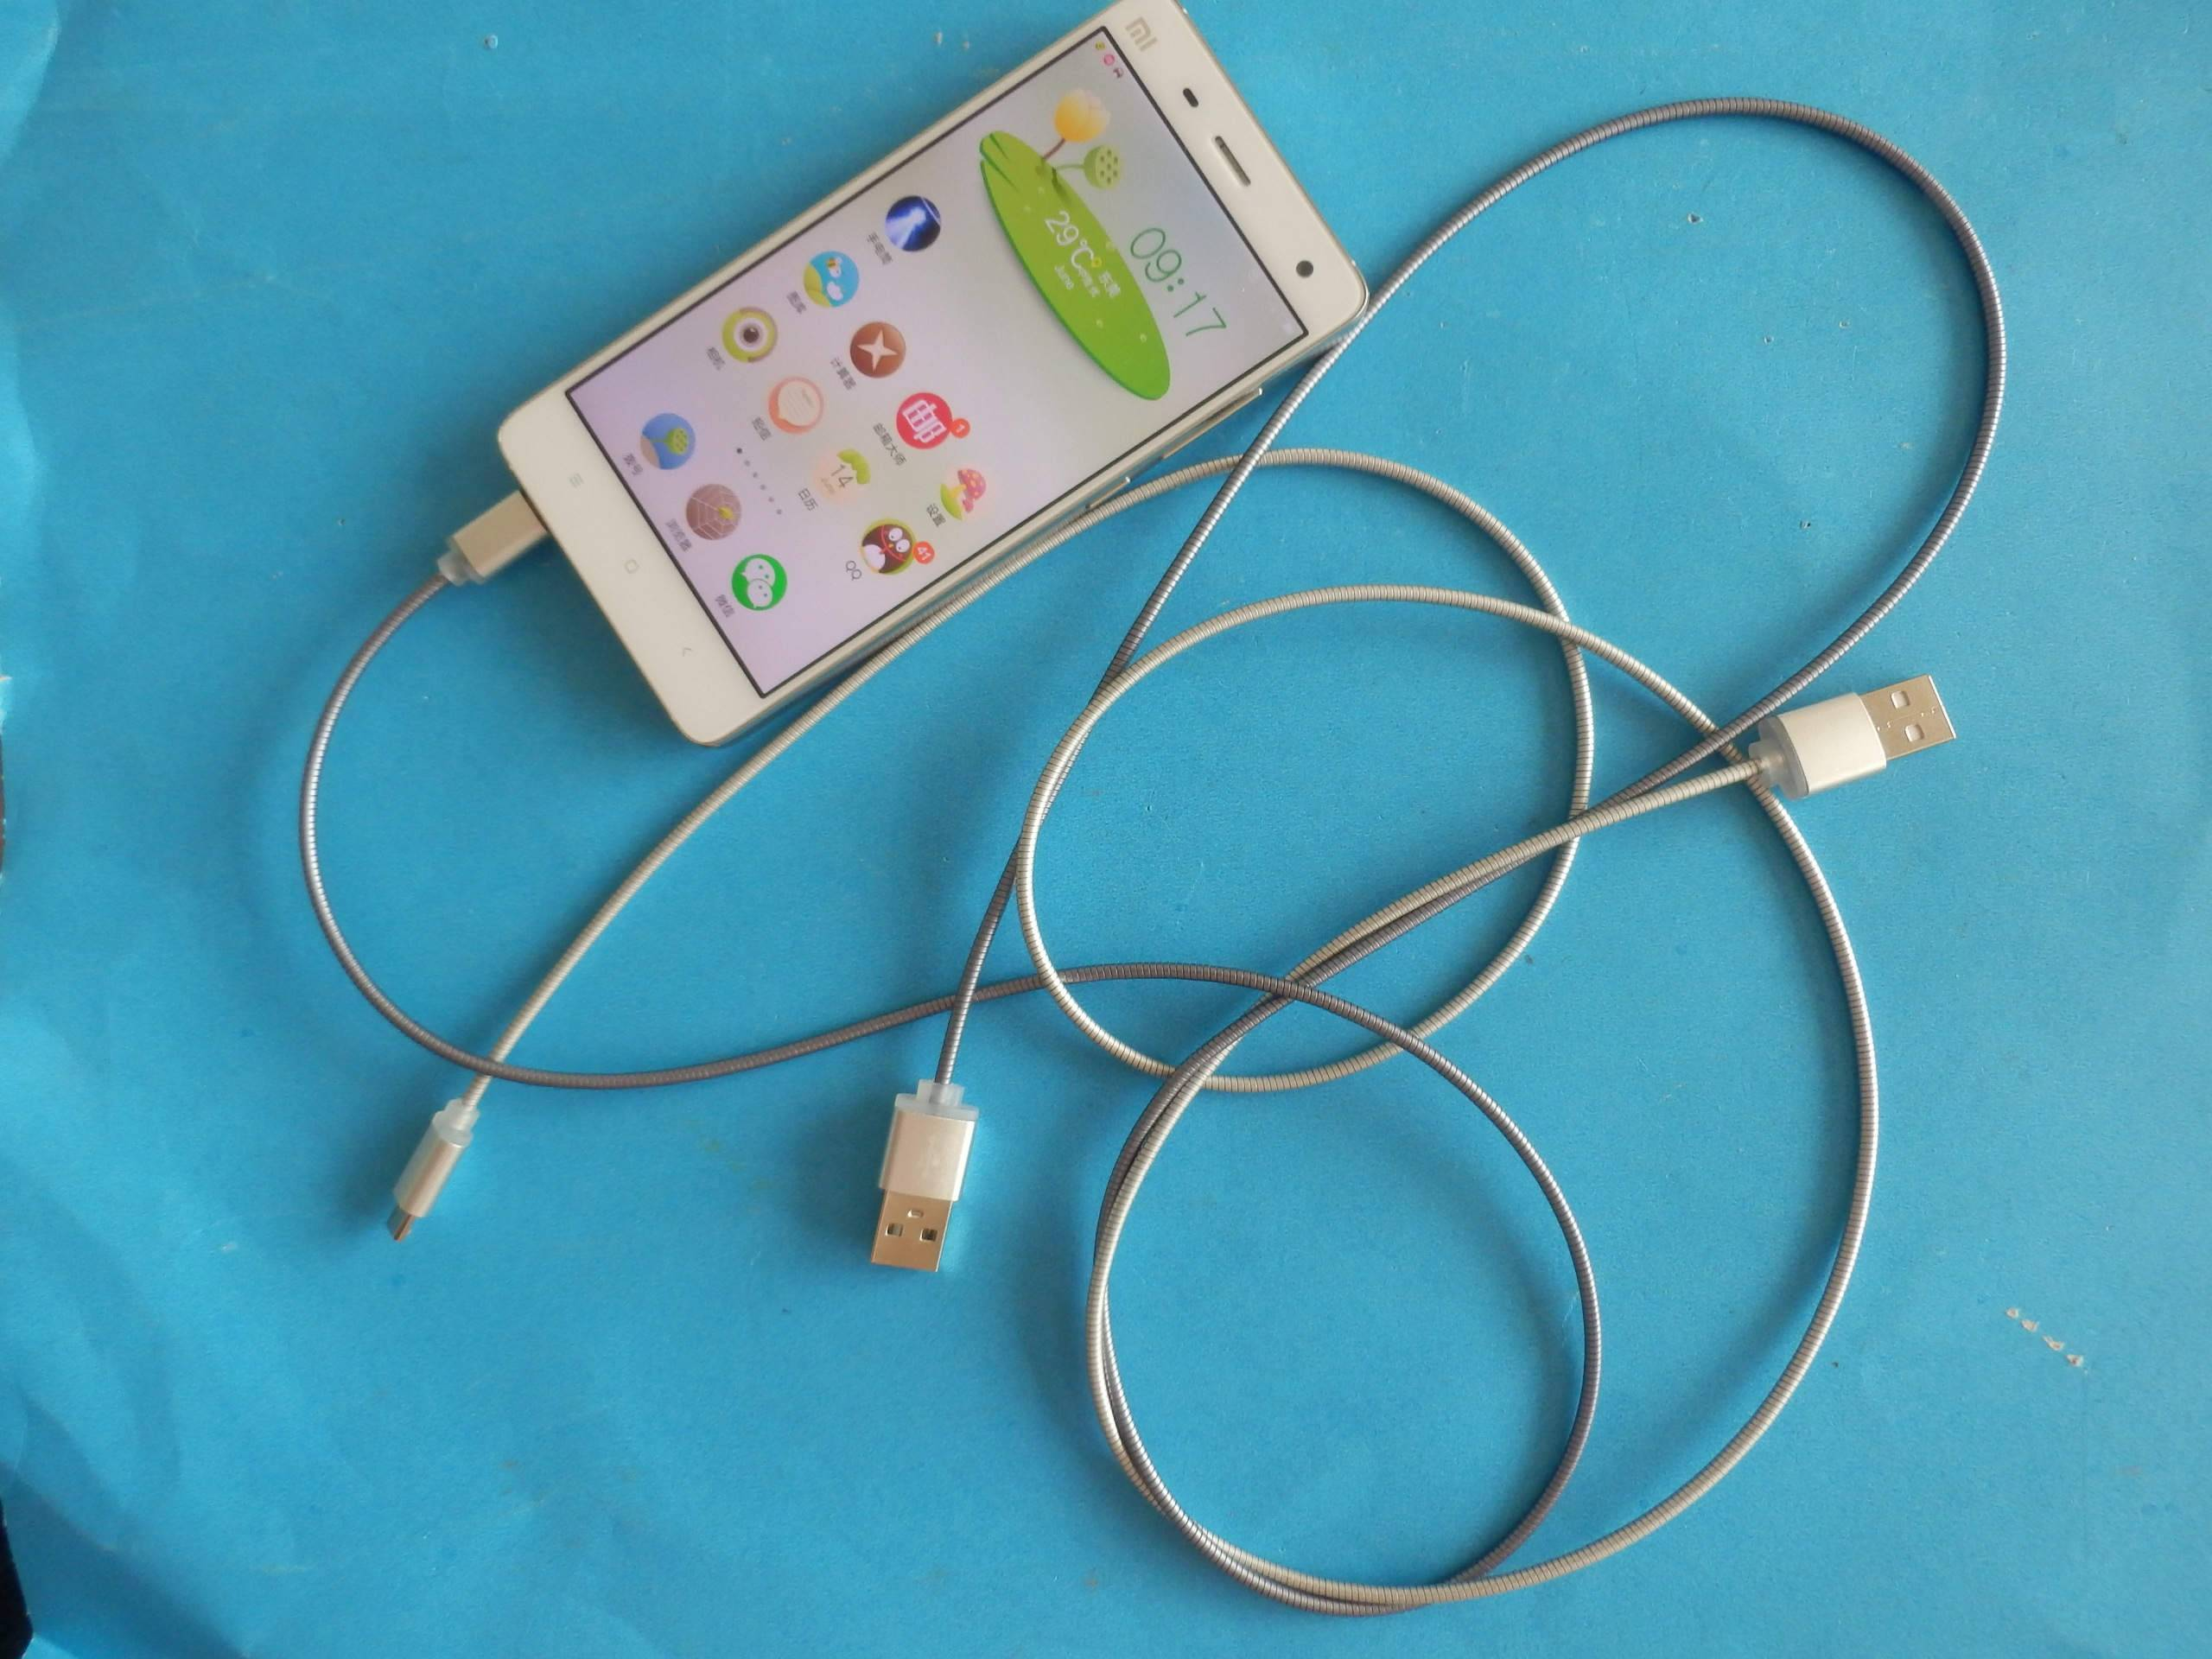 Stainless steel Metal Flexible tube phone usb-micro Data Cable Munufacturer China Supplier